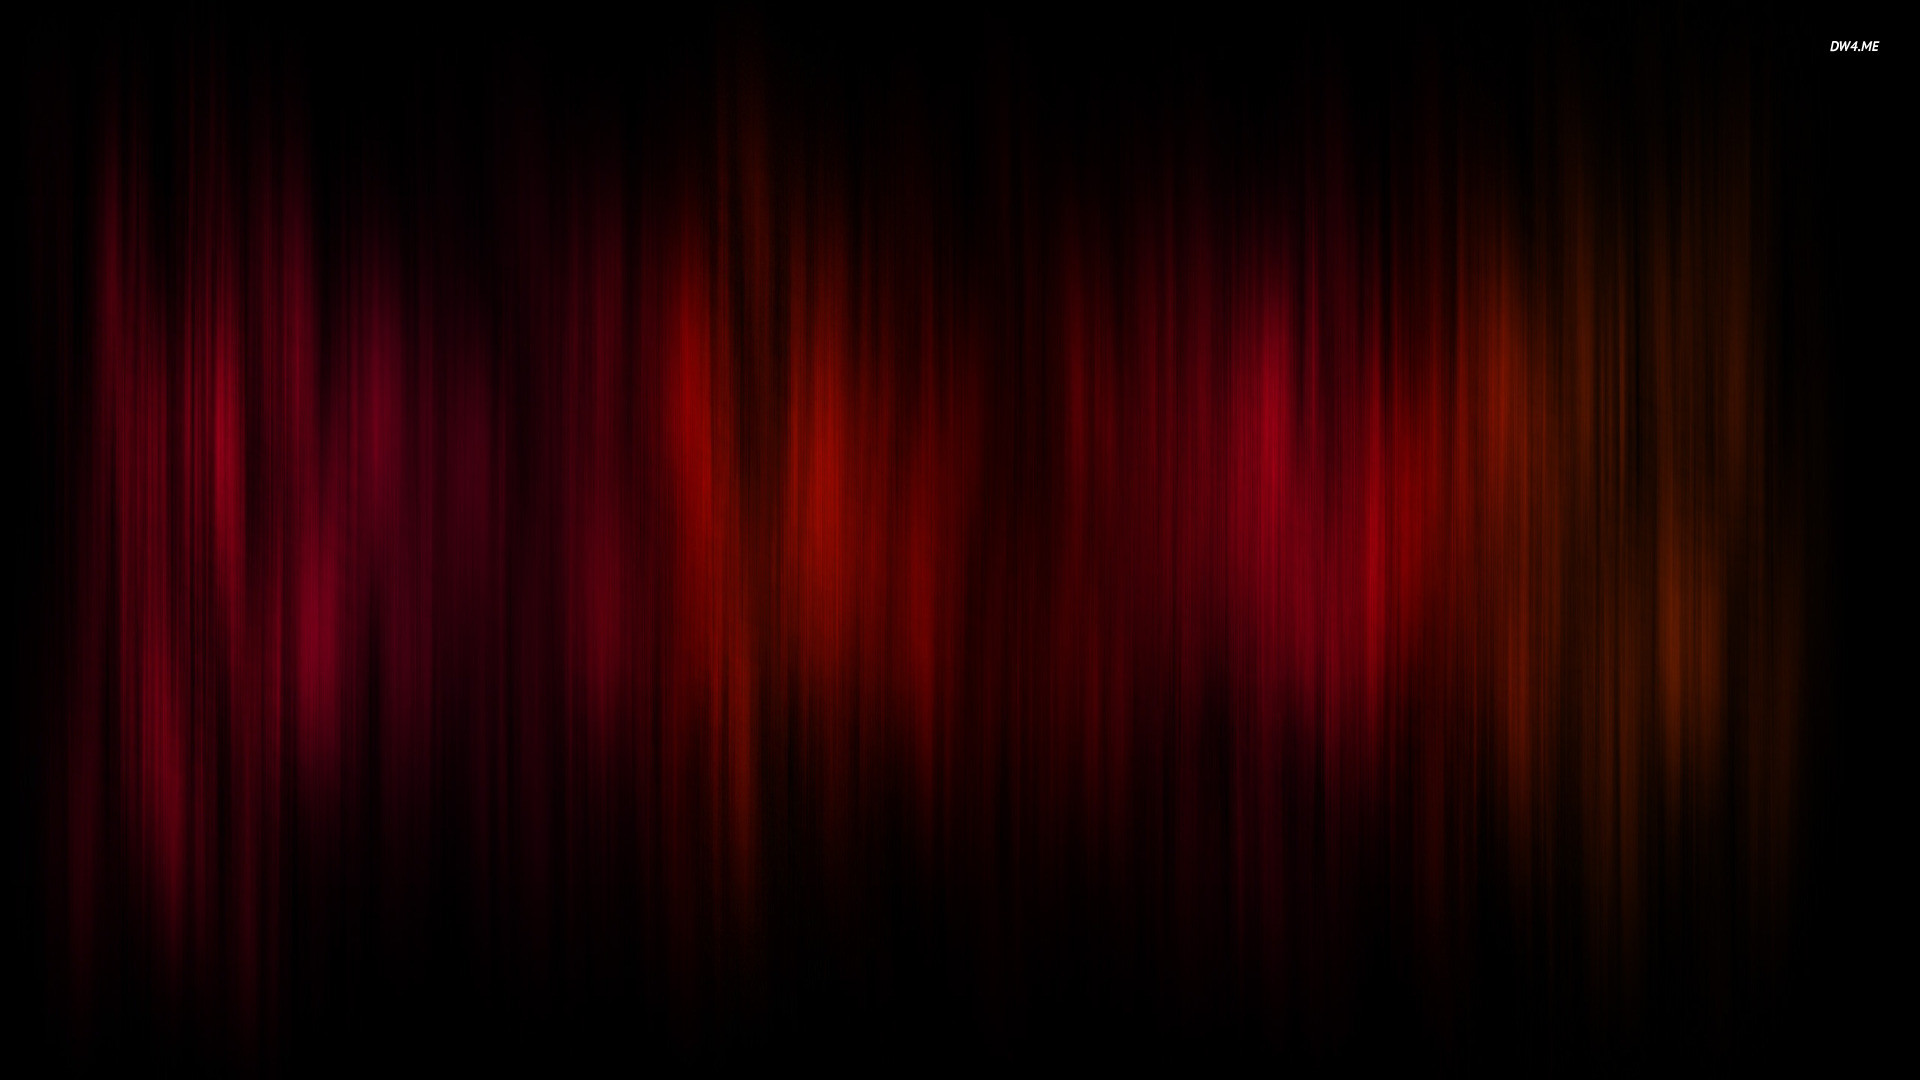 … Black and Red Abstract Cool Wallpaper 464 | Amazing Wallpaperz